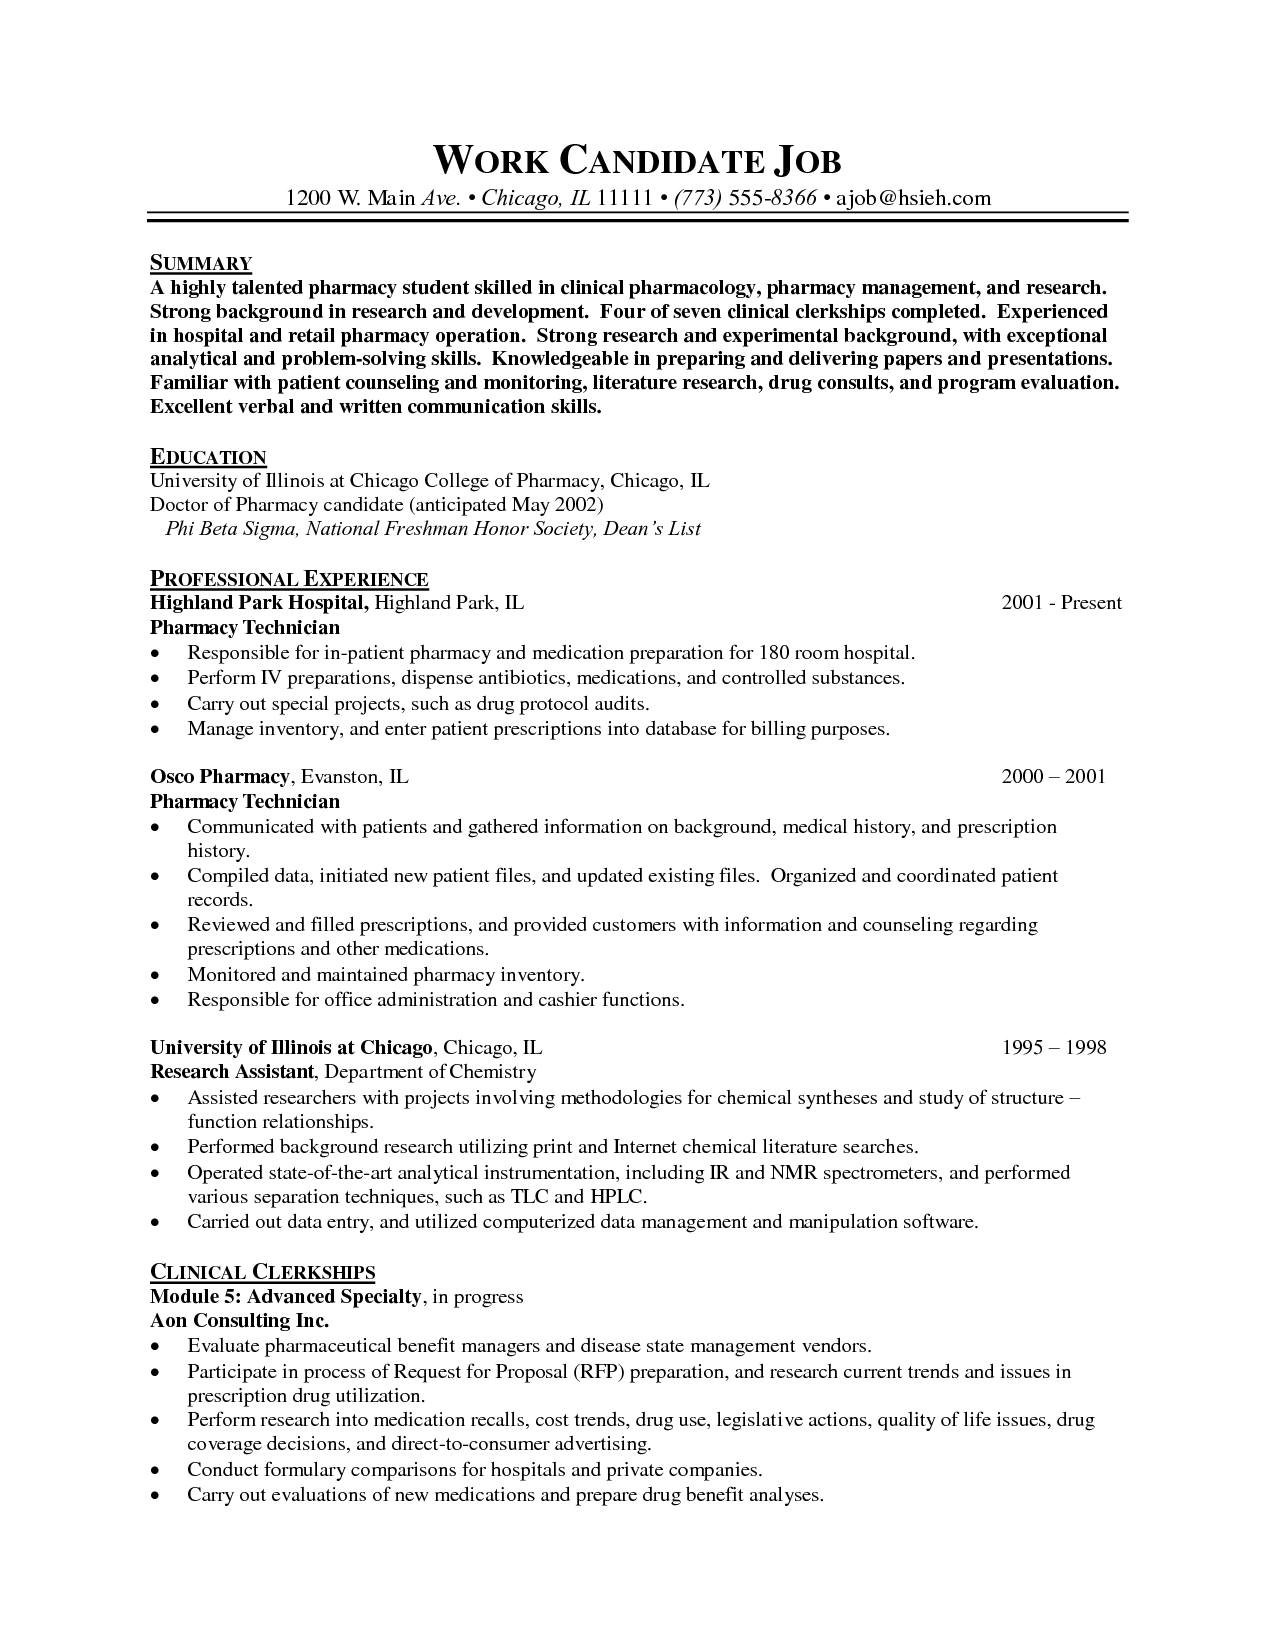 Professional Resume Examples Pretty Looking Professional Resume Service 4  Professional Resume Service Professional Resume Cover Letter